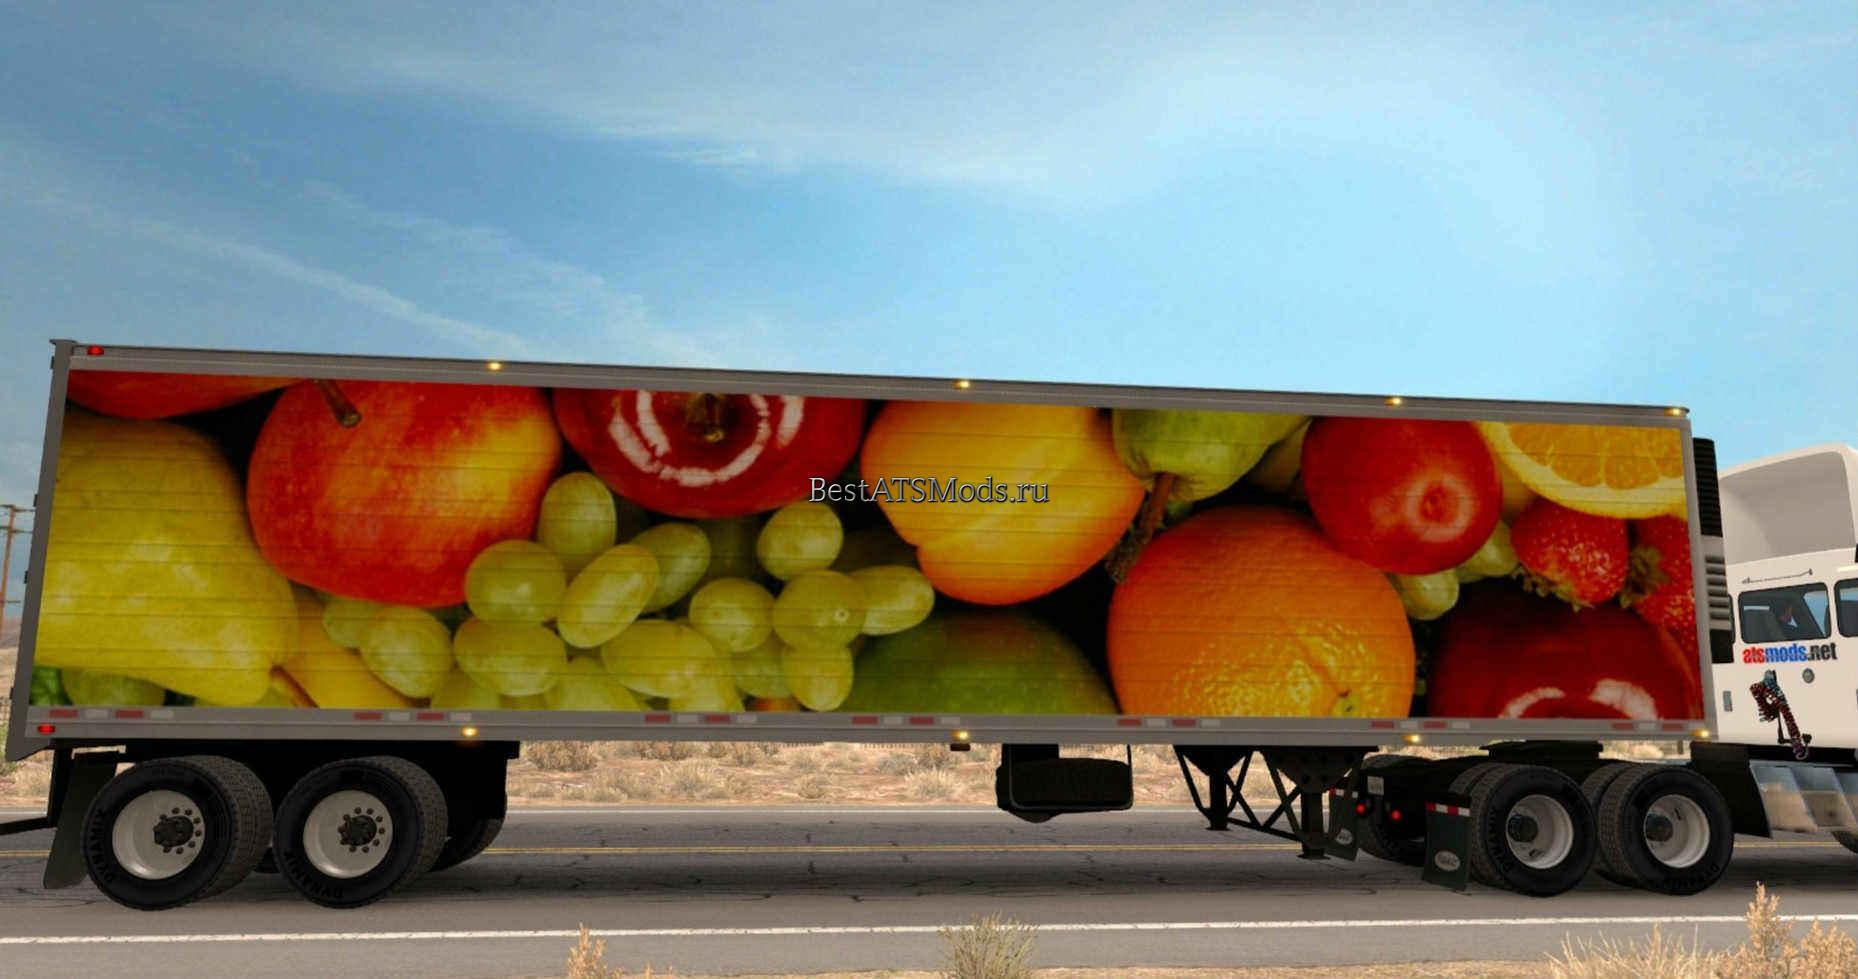 rsz_Мод_прицеп-рефижиратор_fresh_fruits_standalone_reefer_trailer_for_american_truck_simulator